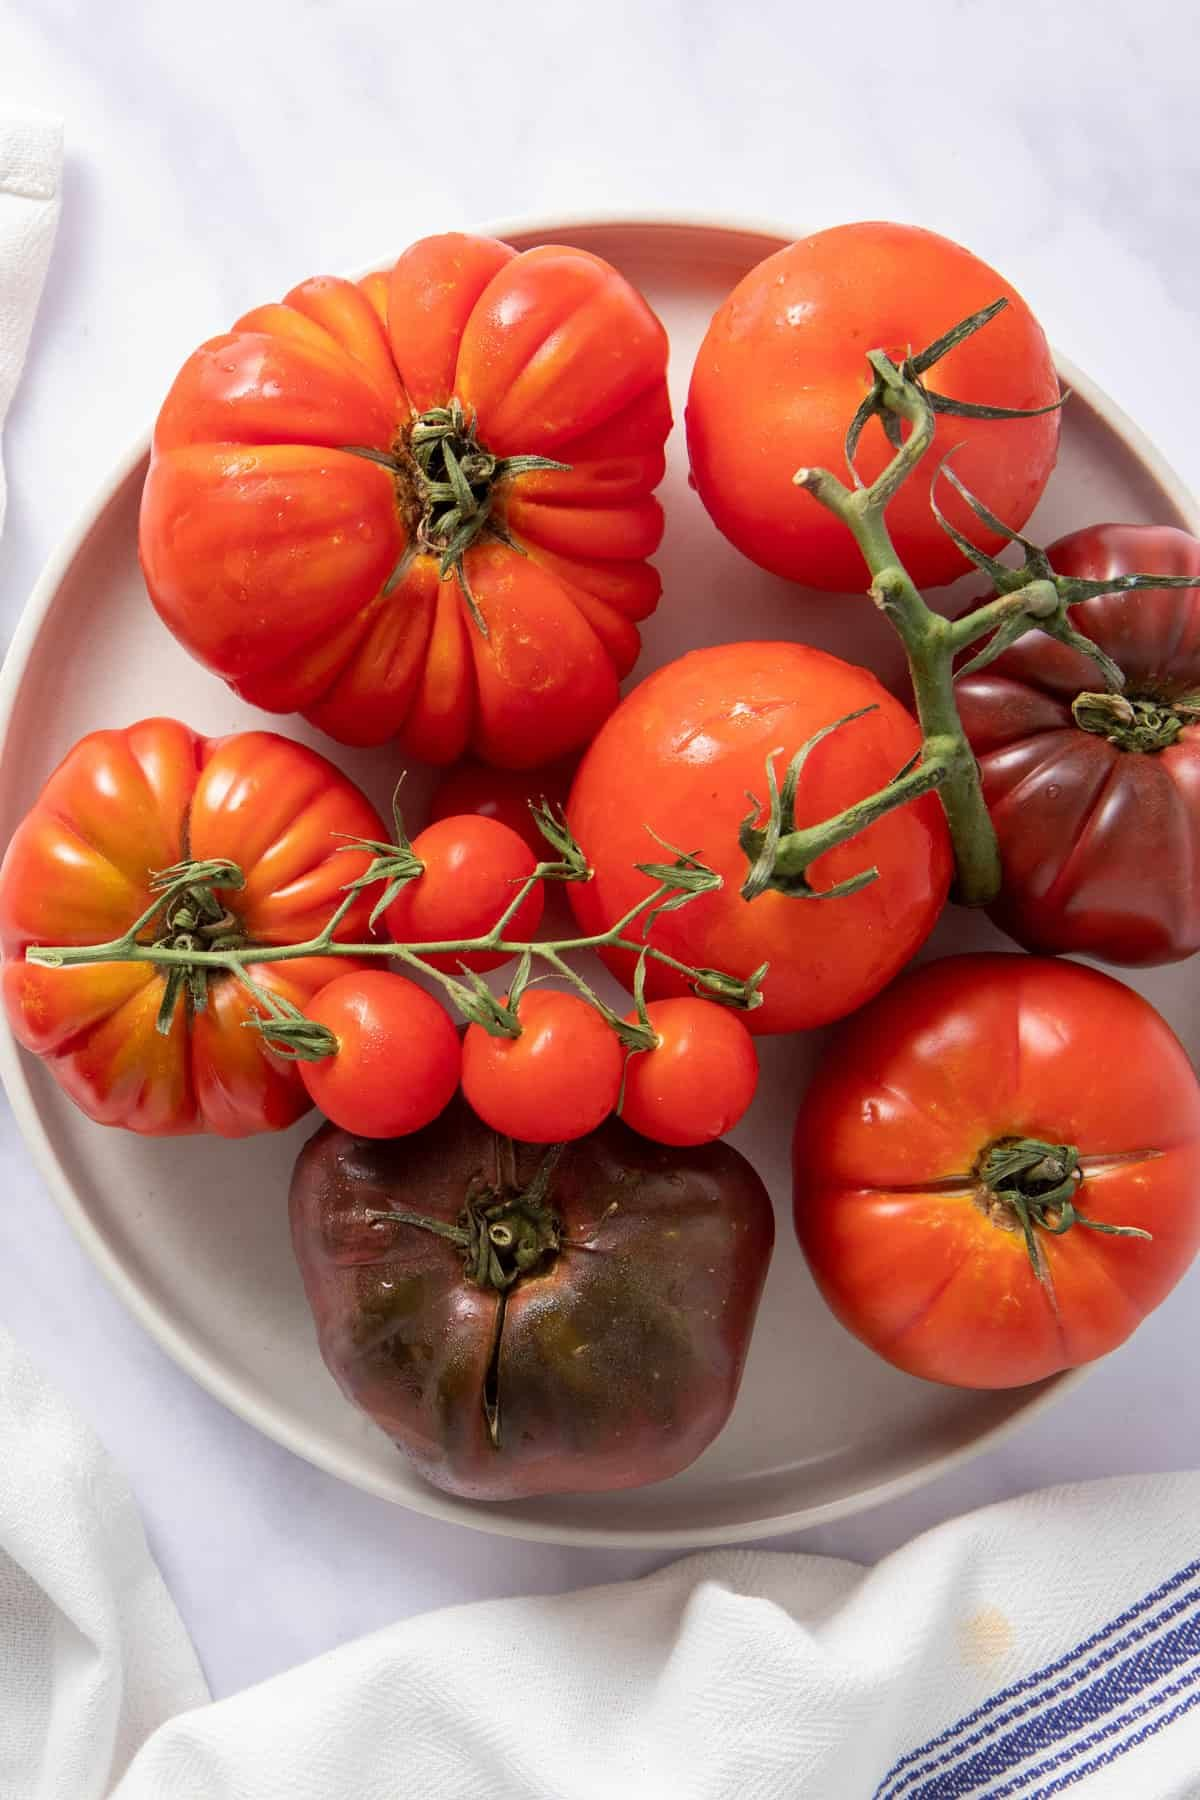 Plate of different types of tomatoes used in the salad